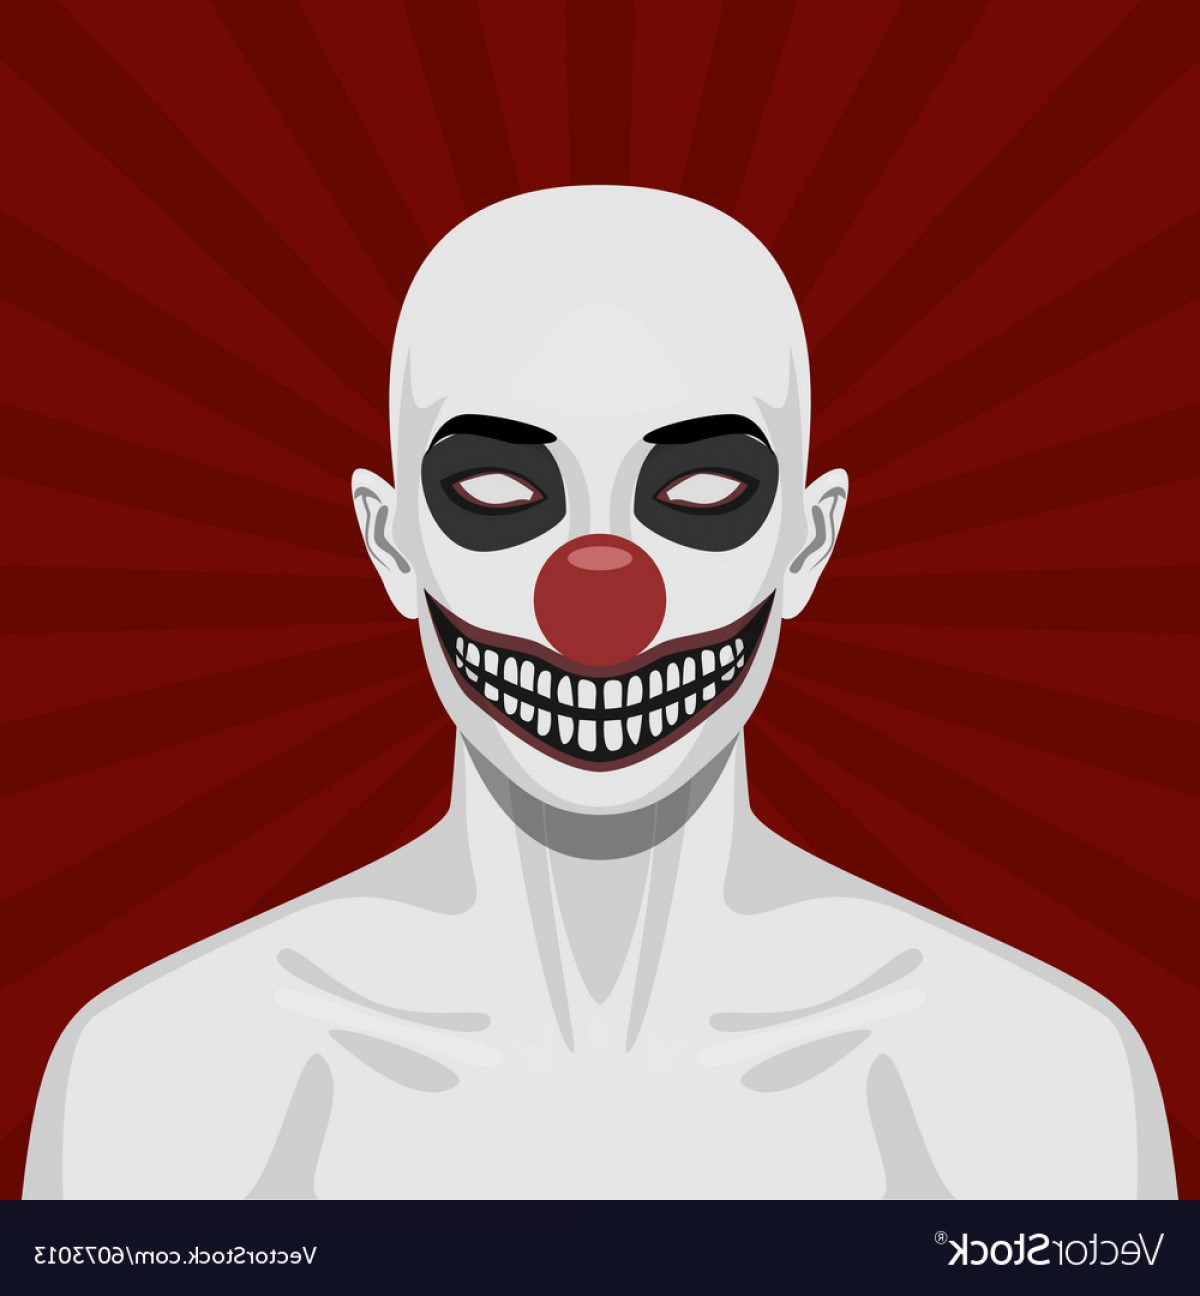 Evil Clown Vector Art: Bald Scary Clown With Smiling Face Vector